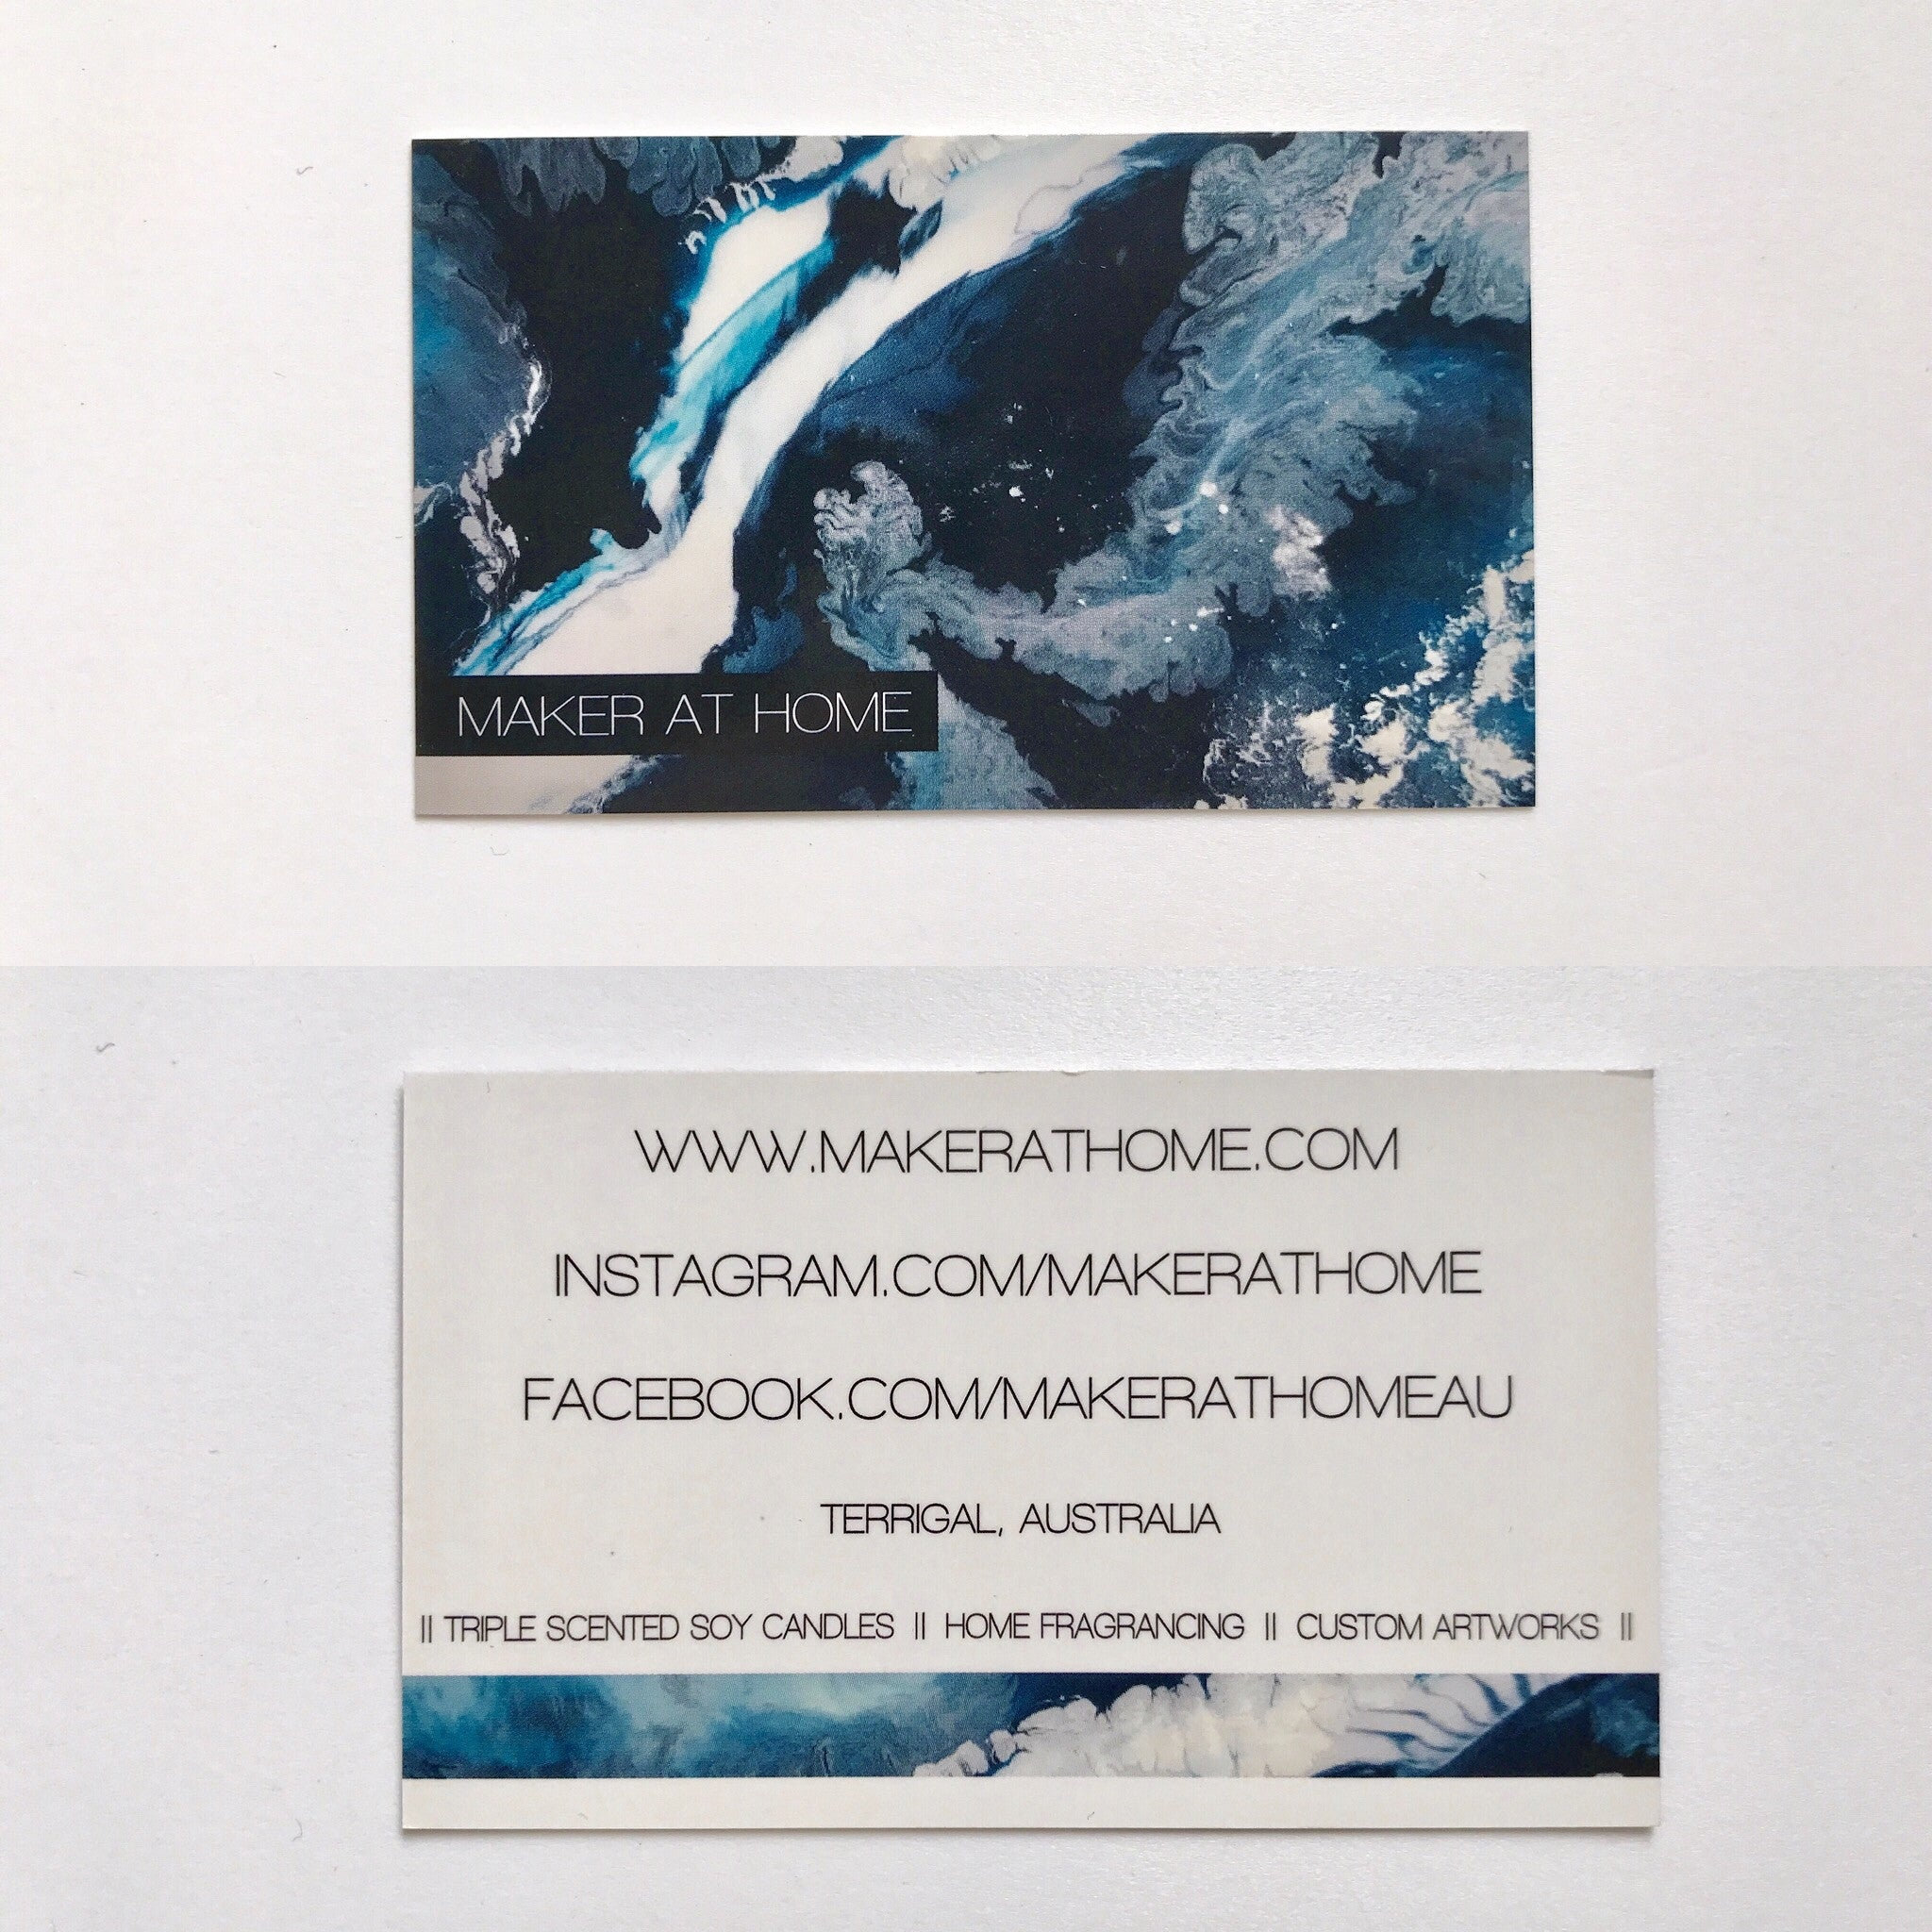 BUSINESS CARD – oztc